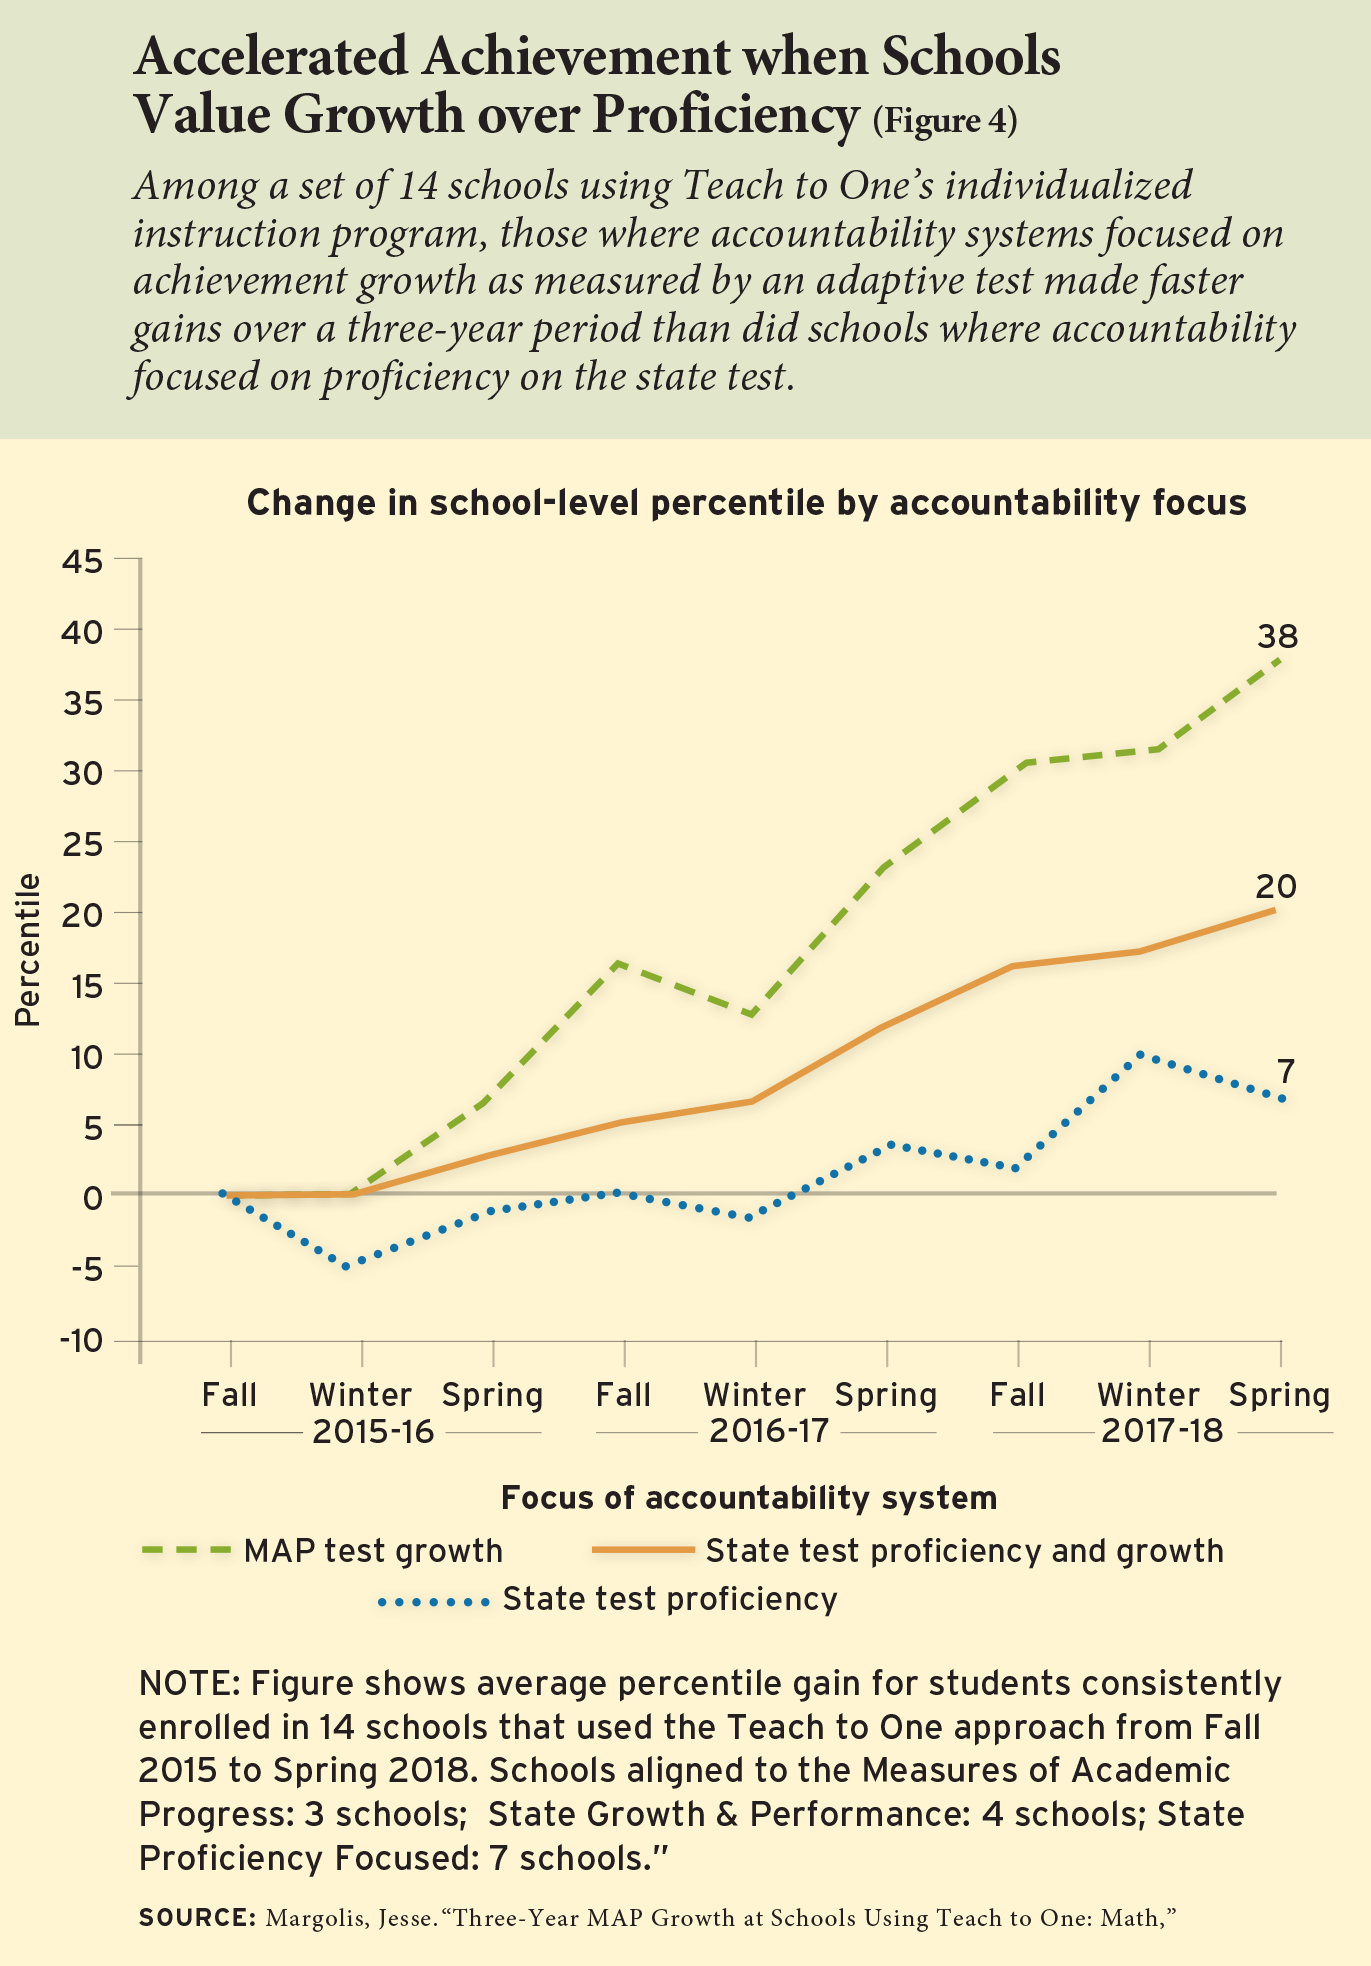 Accelerated Achievement when Schools Value Growth over Proficiency (Figure 4)